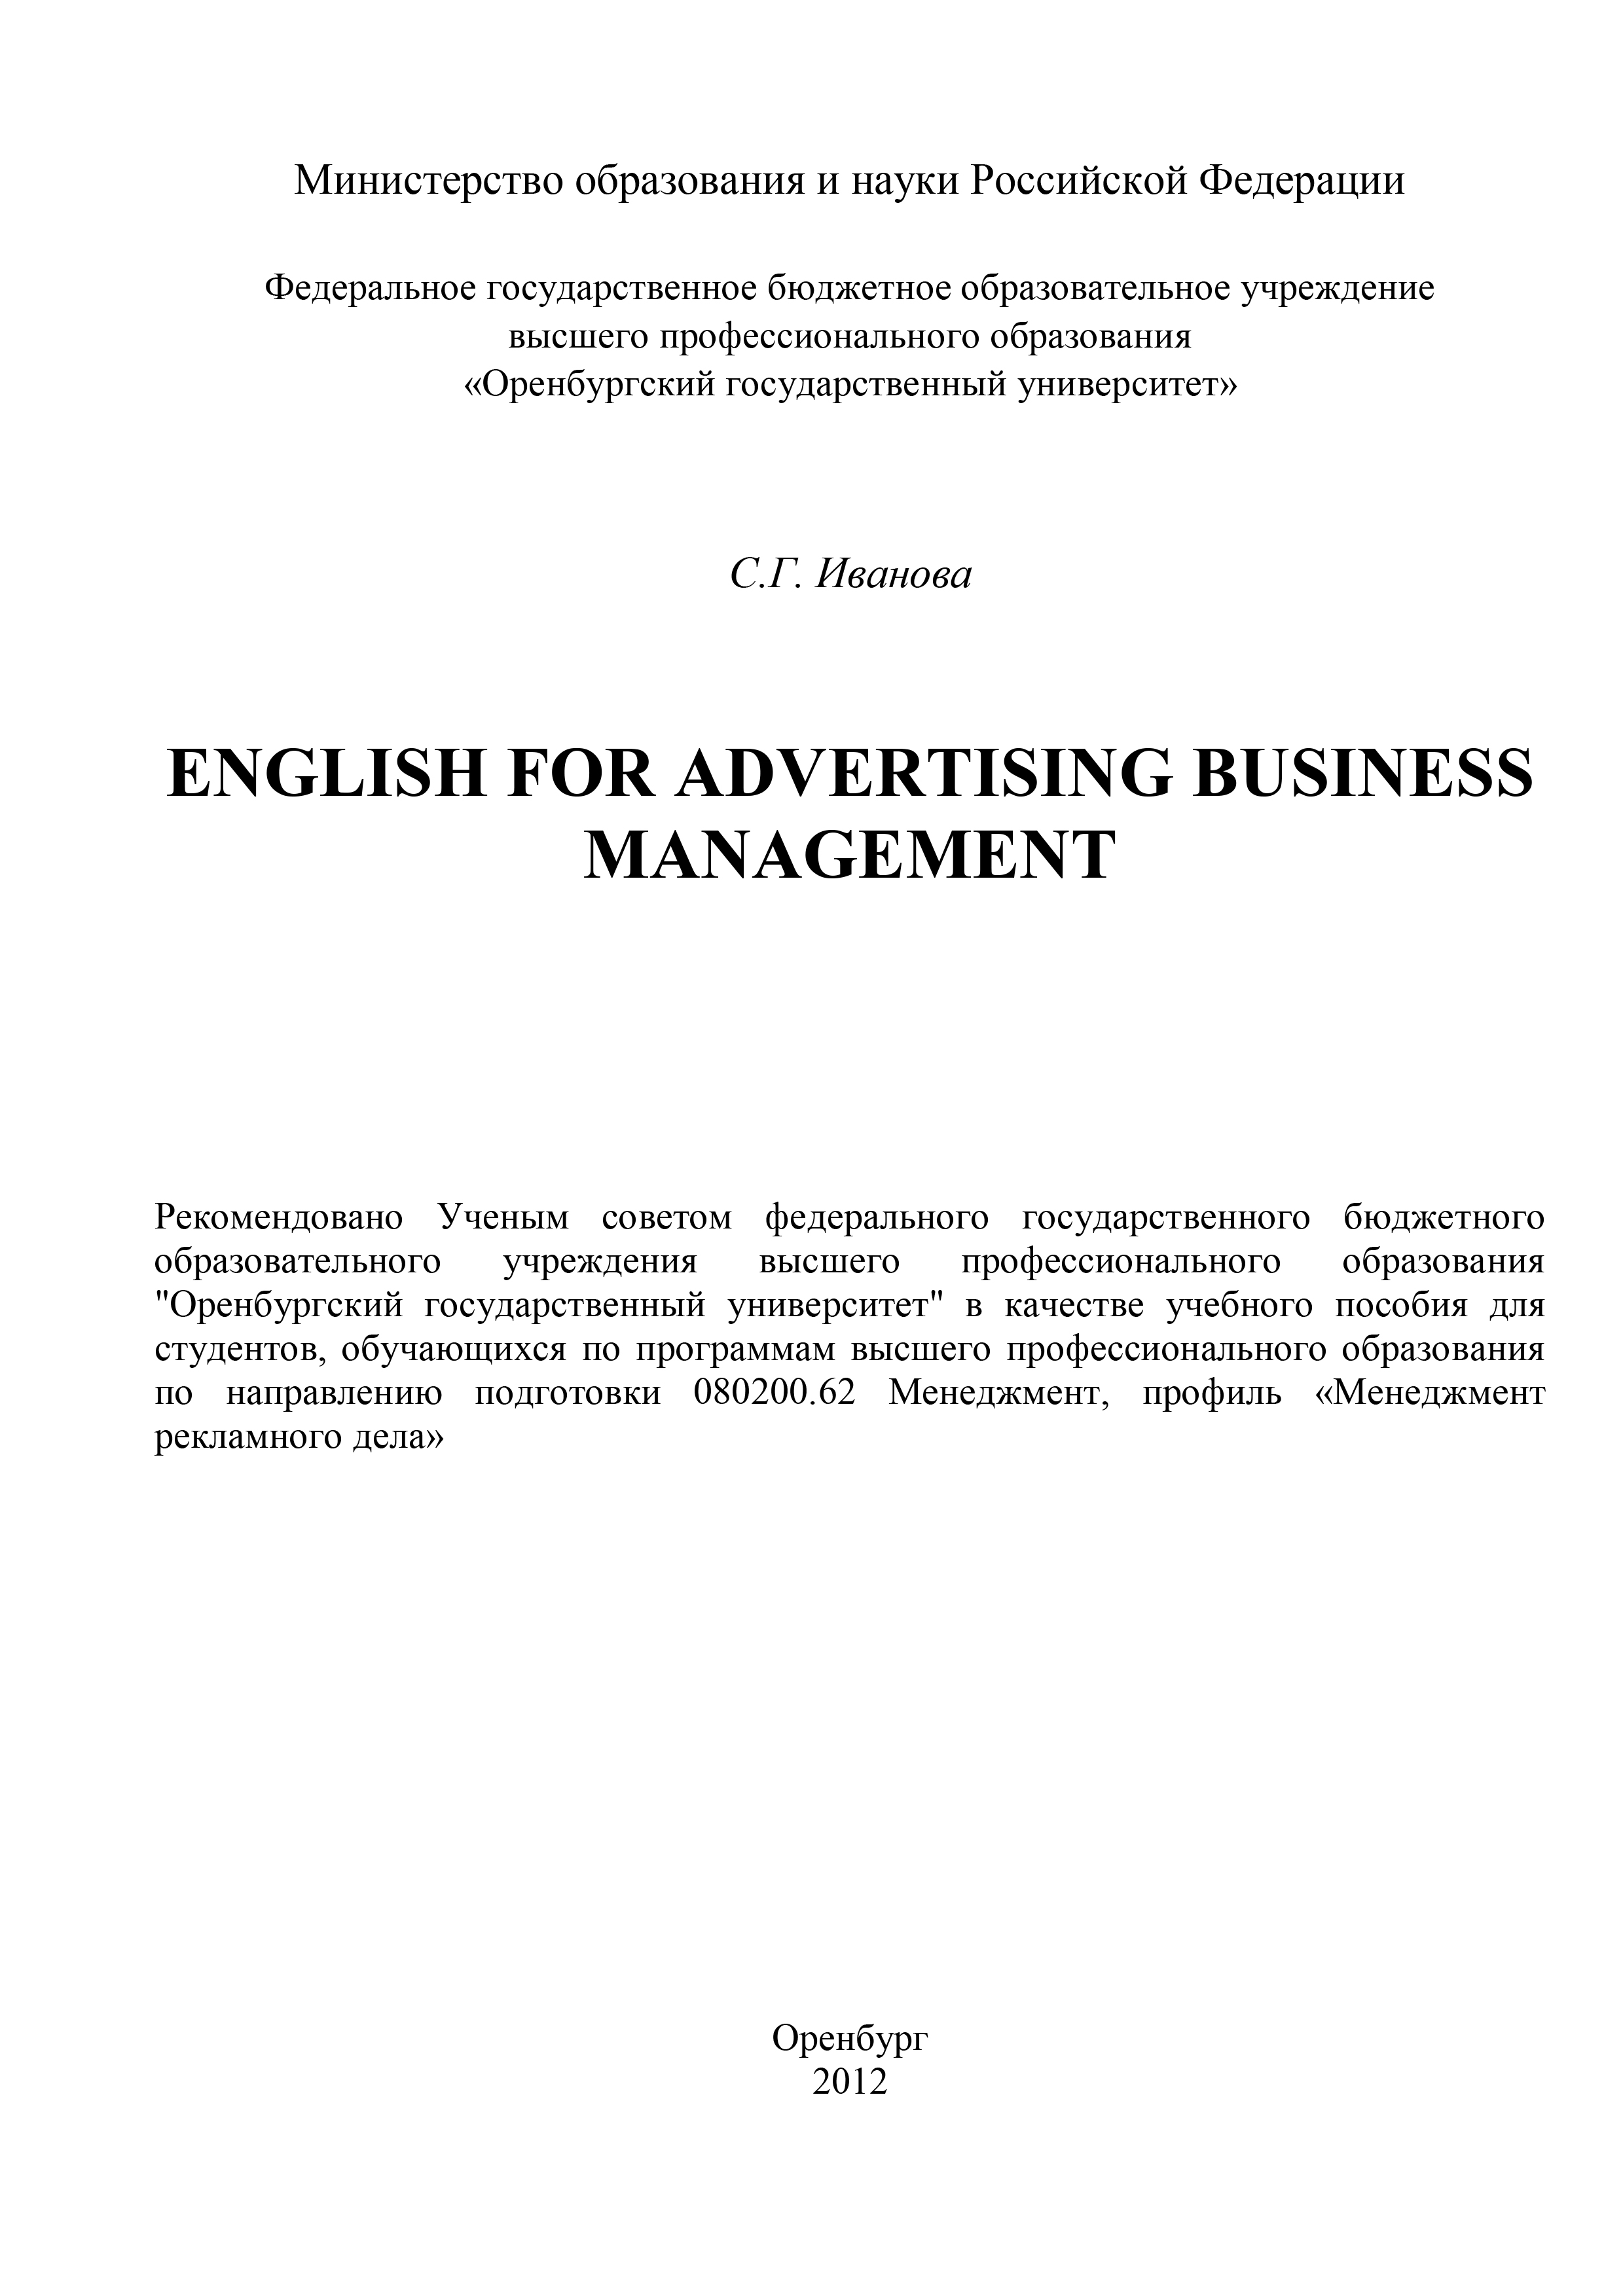 English for advertising business management